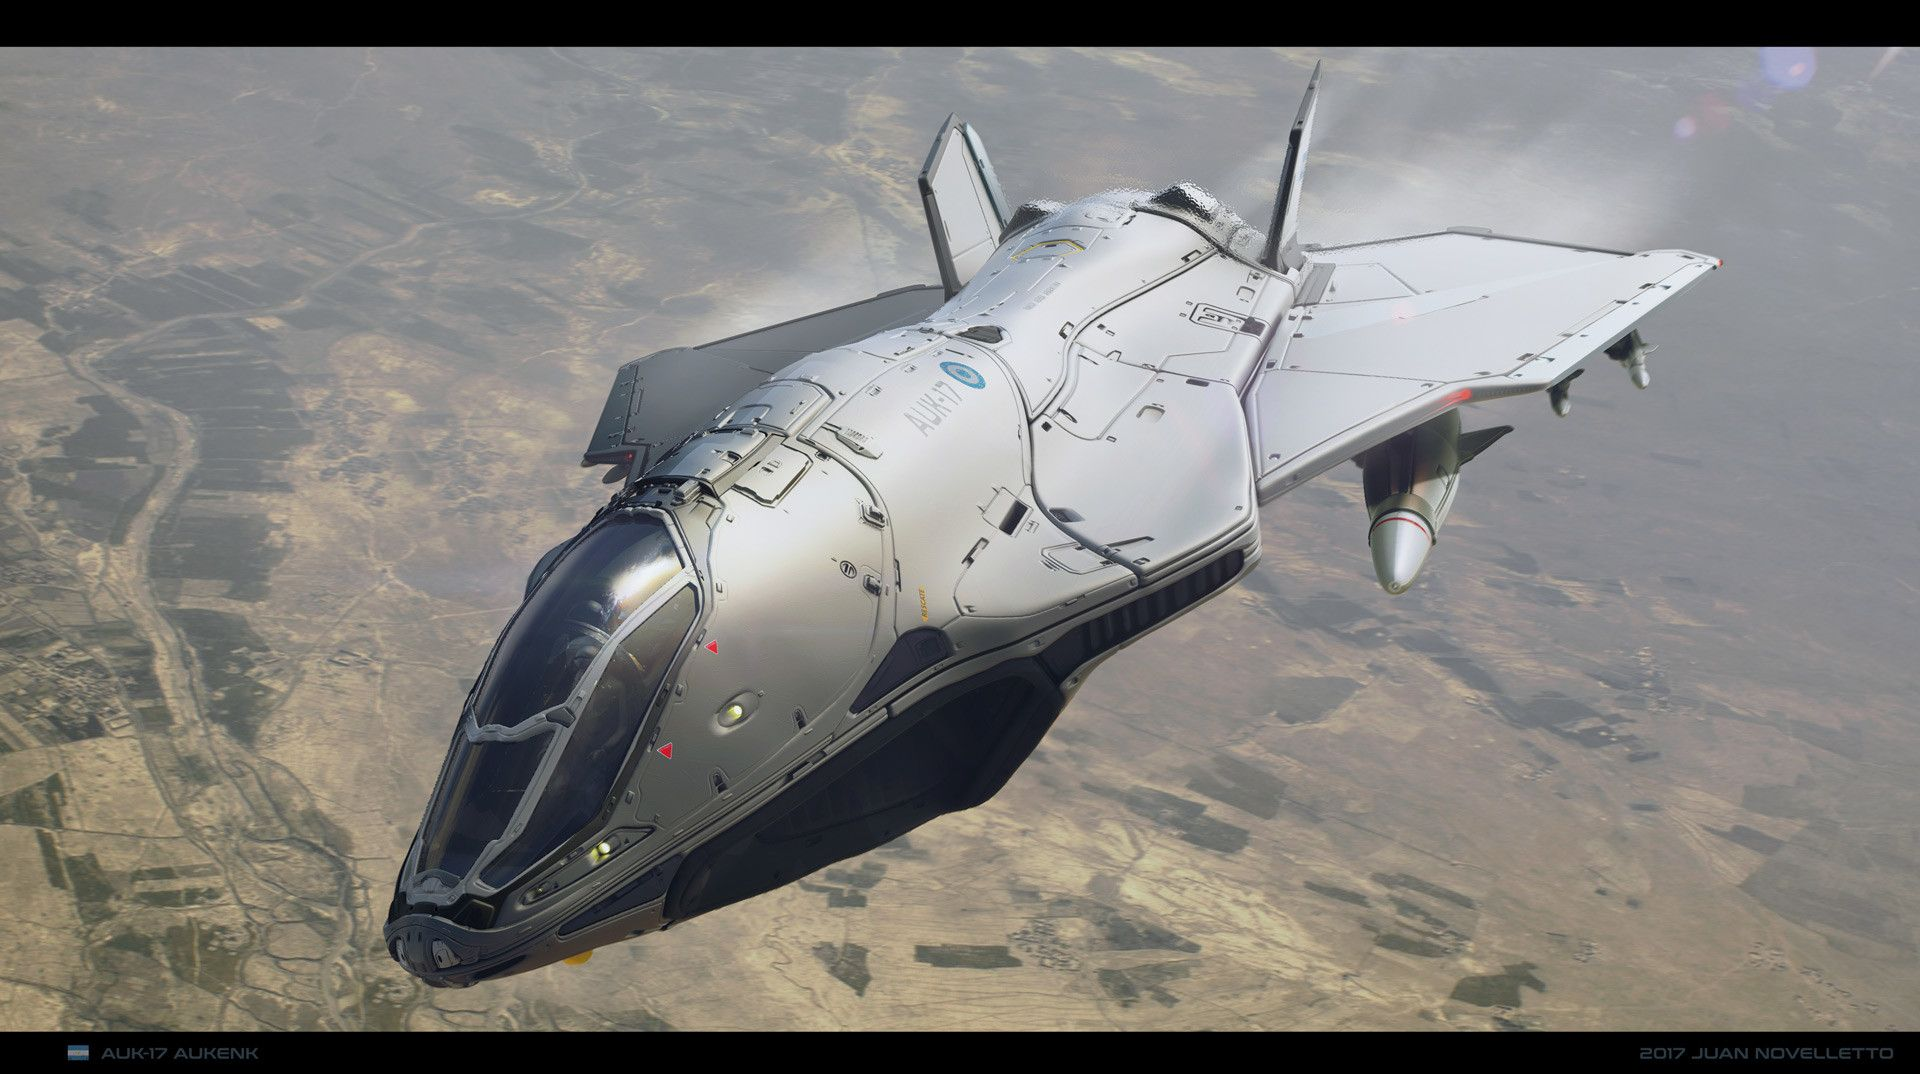 Pin by Grey lord on Aircraft Concepts | Sci fi ships ...